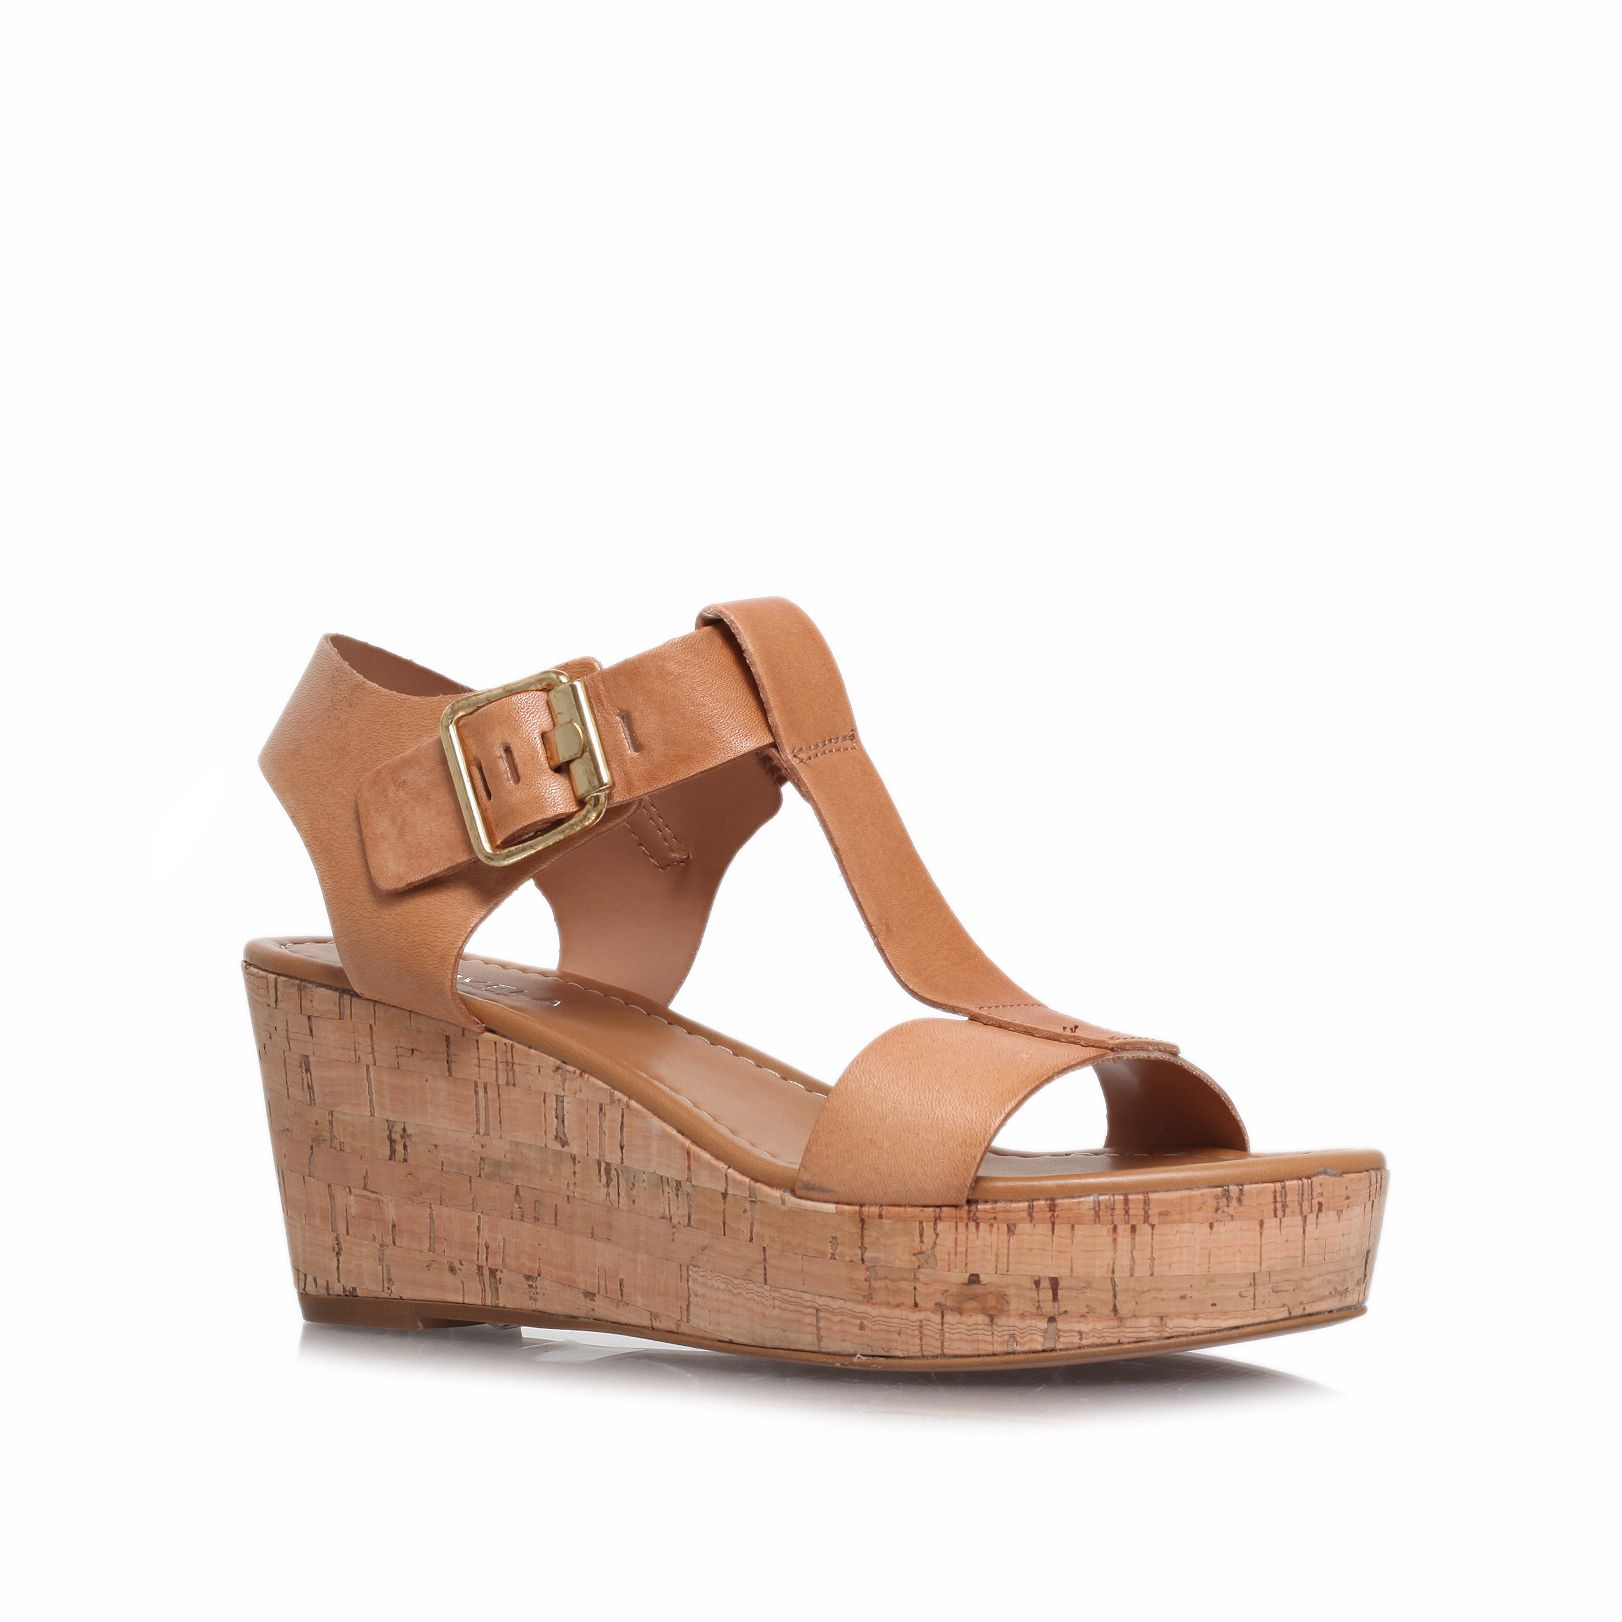 Known mid heel wedge sandals